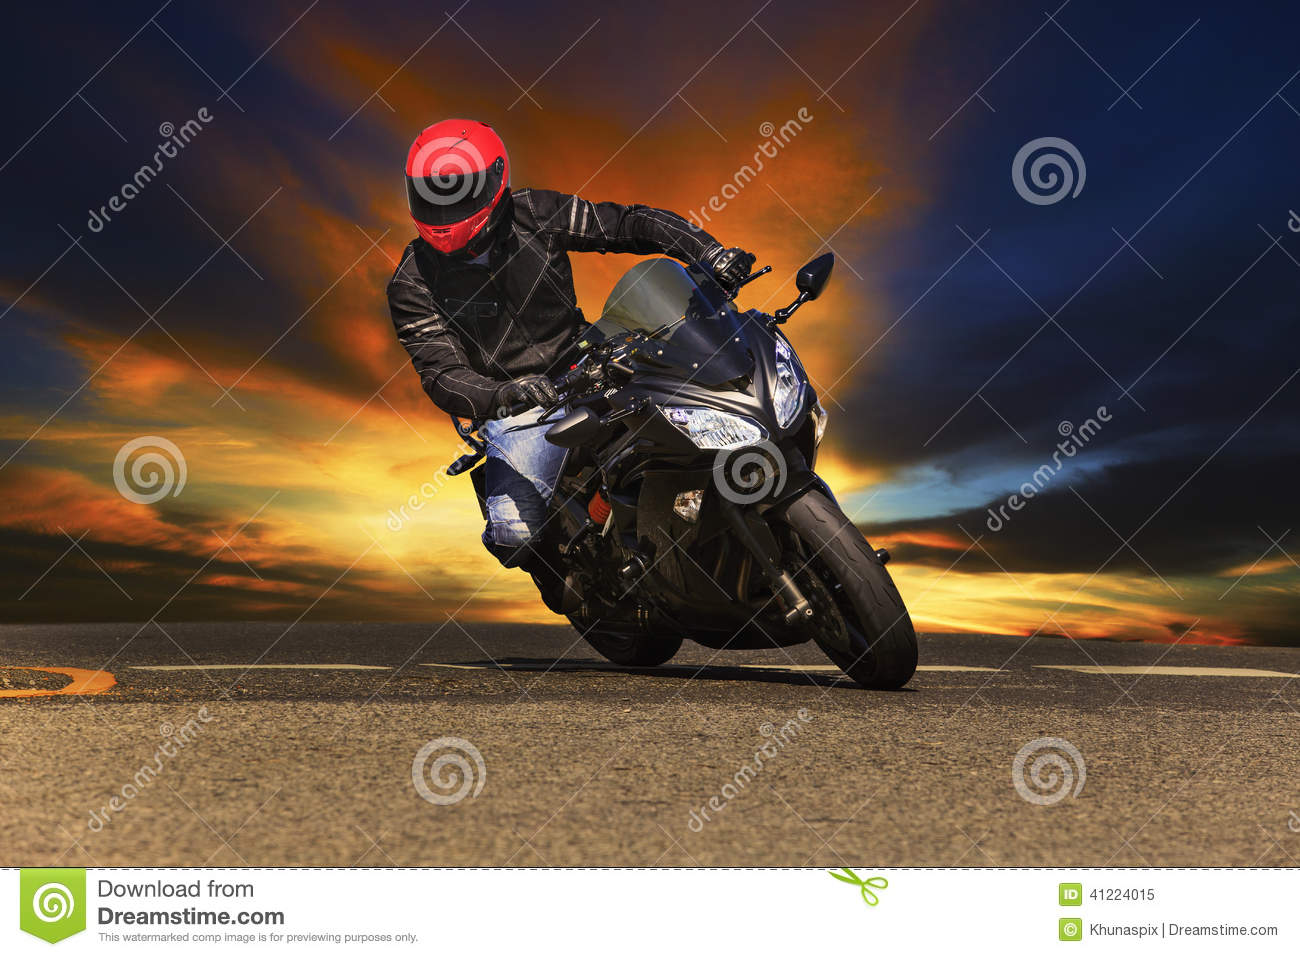 Young man riding big bike motorcycle on asphalt roads